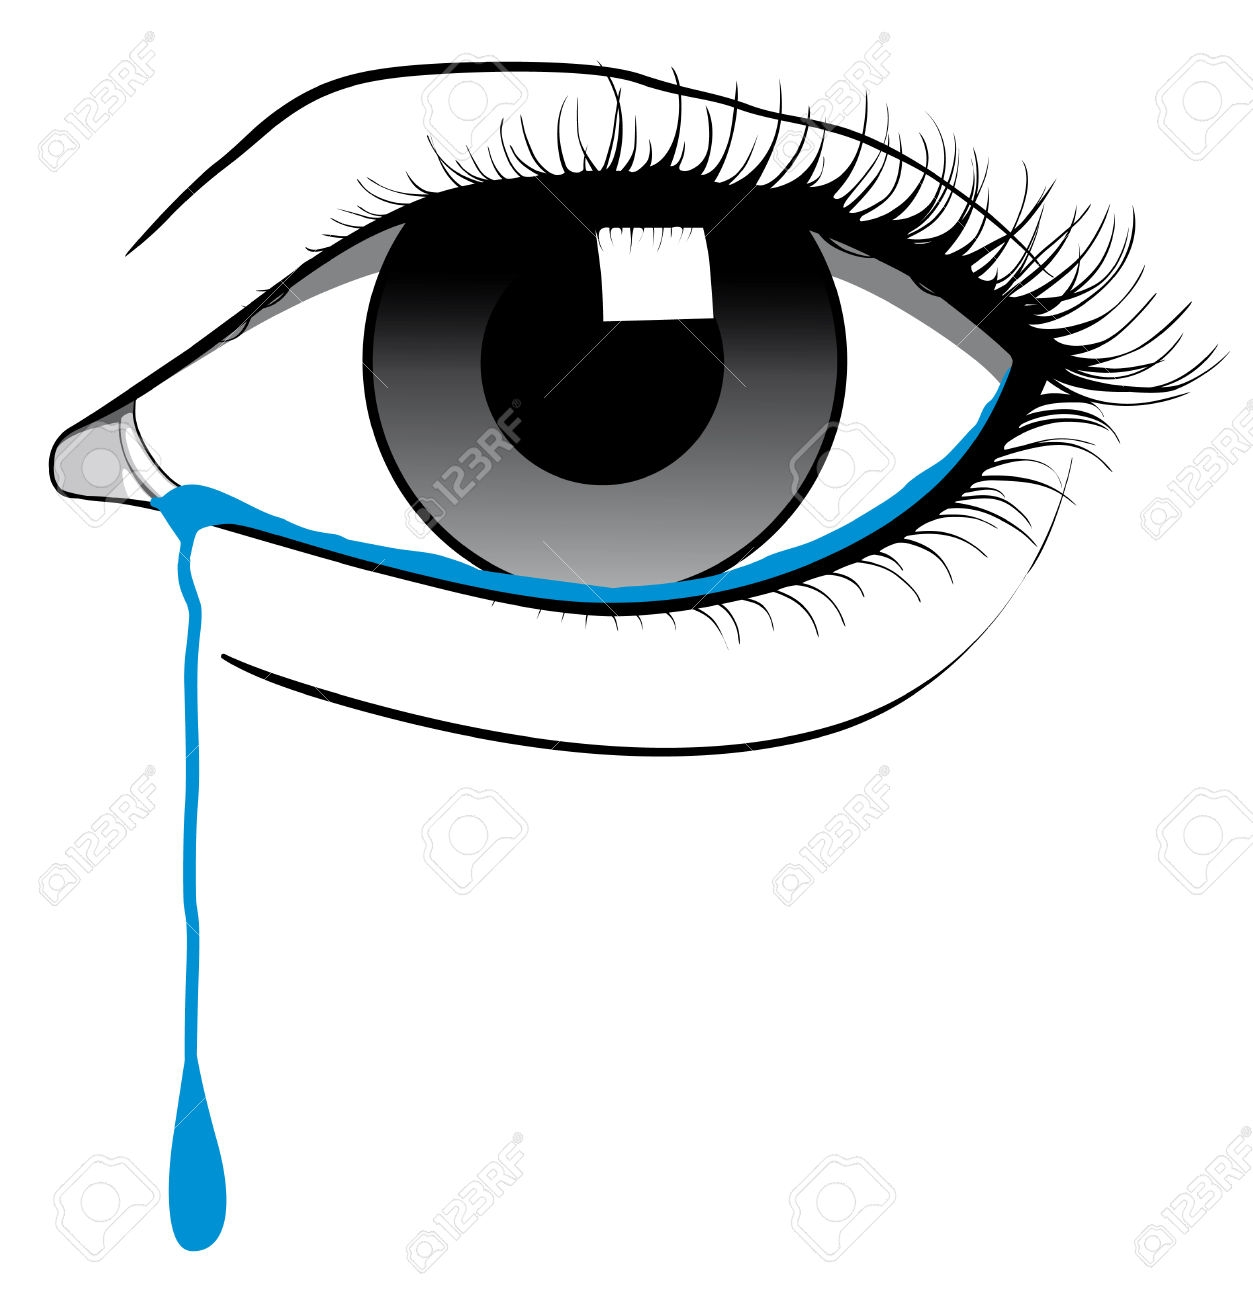 eye with tears clipart - Clipground